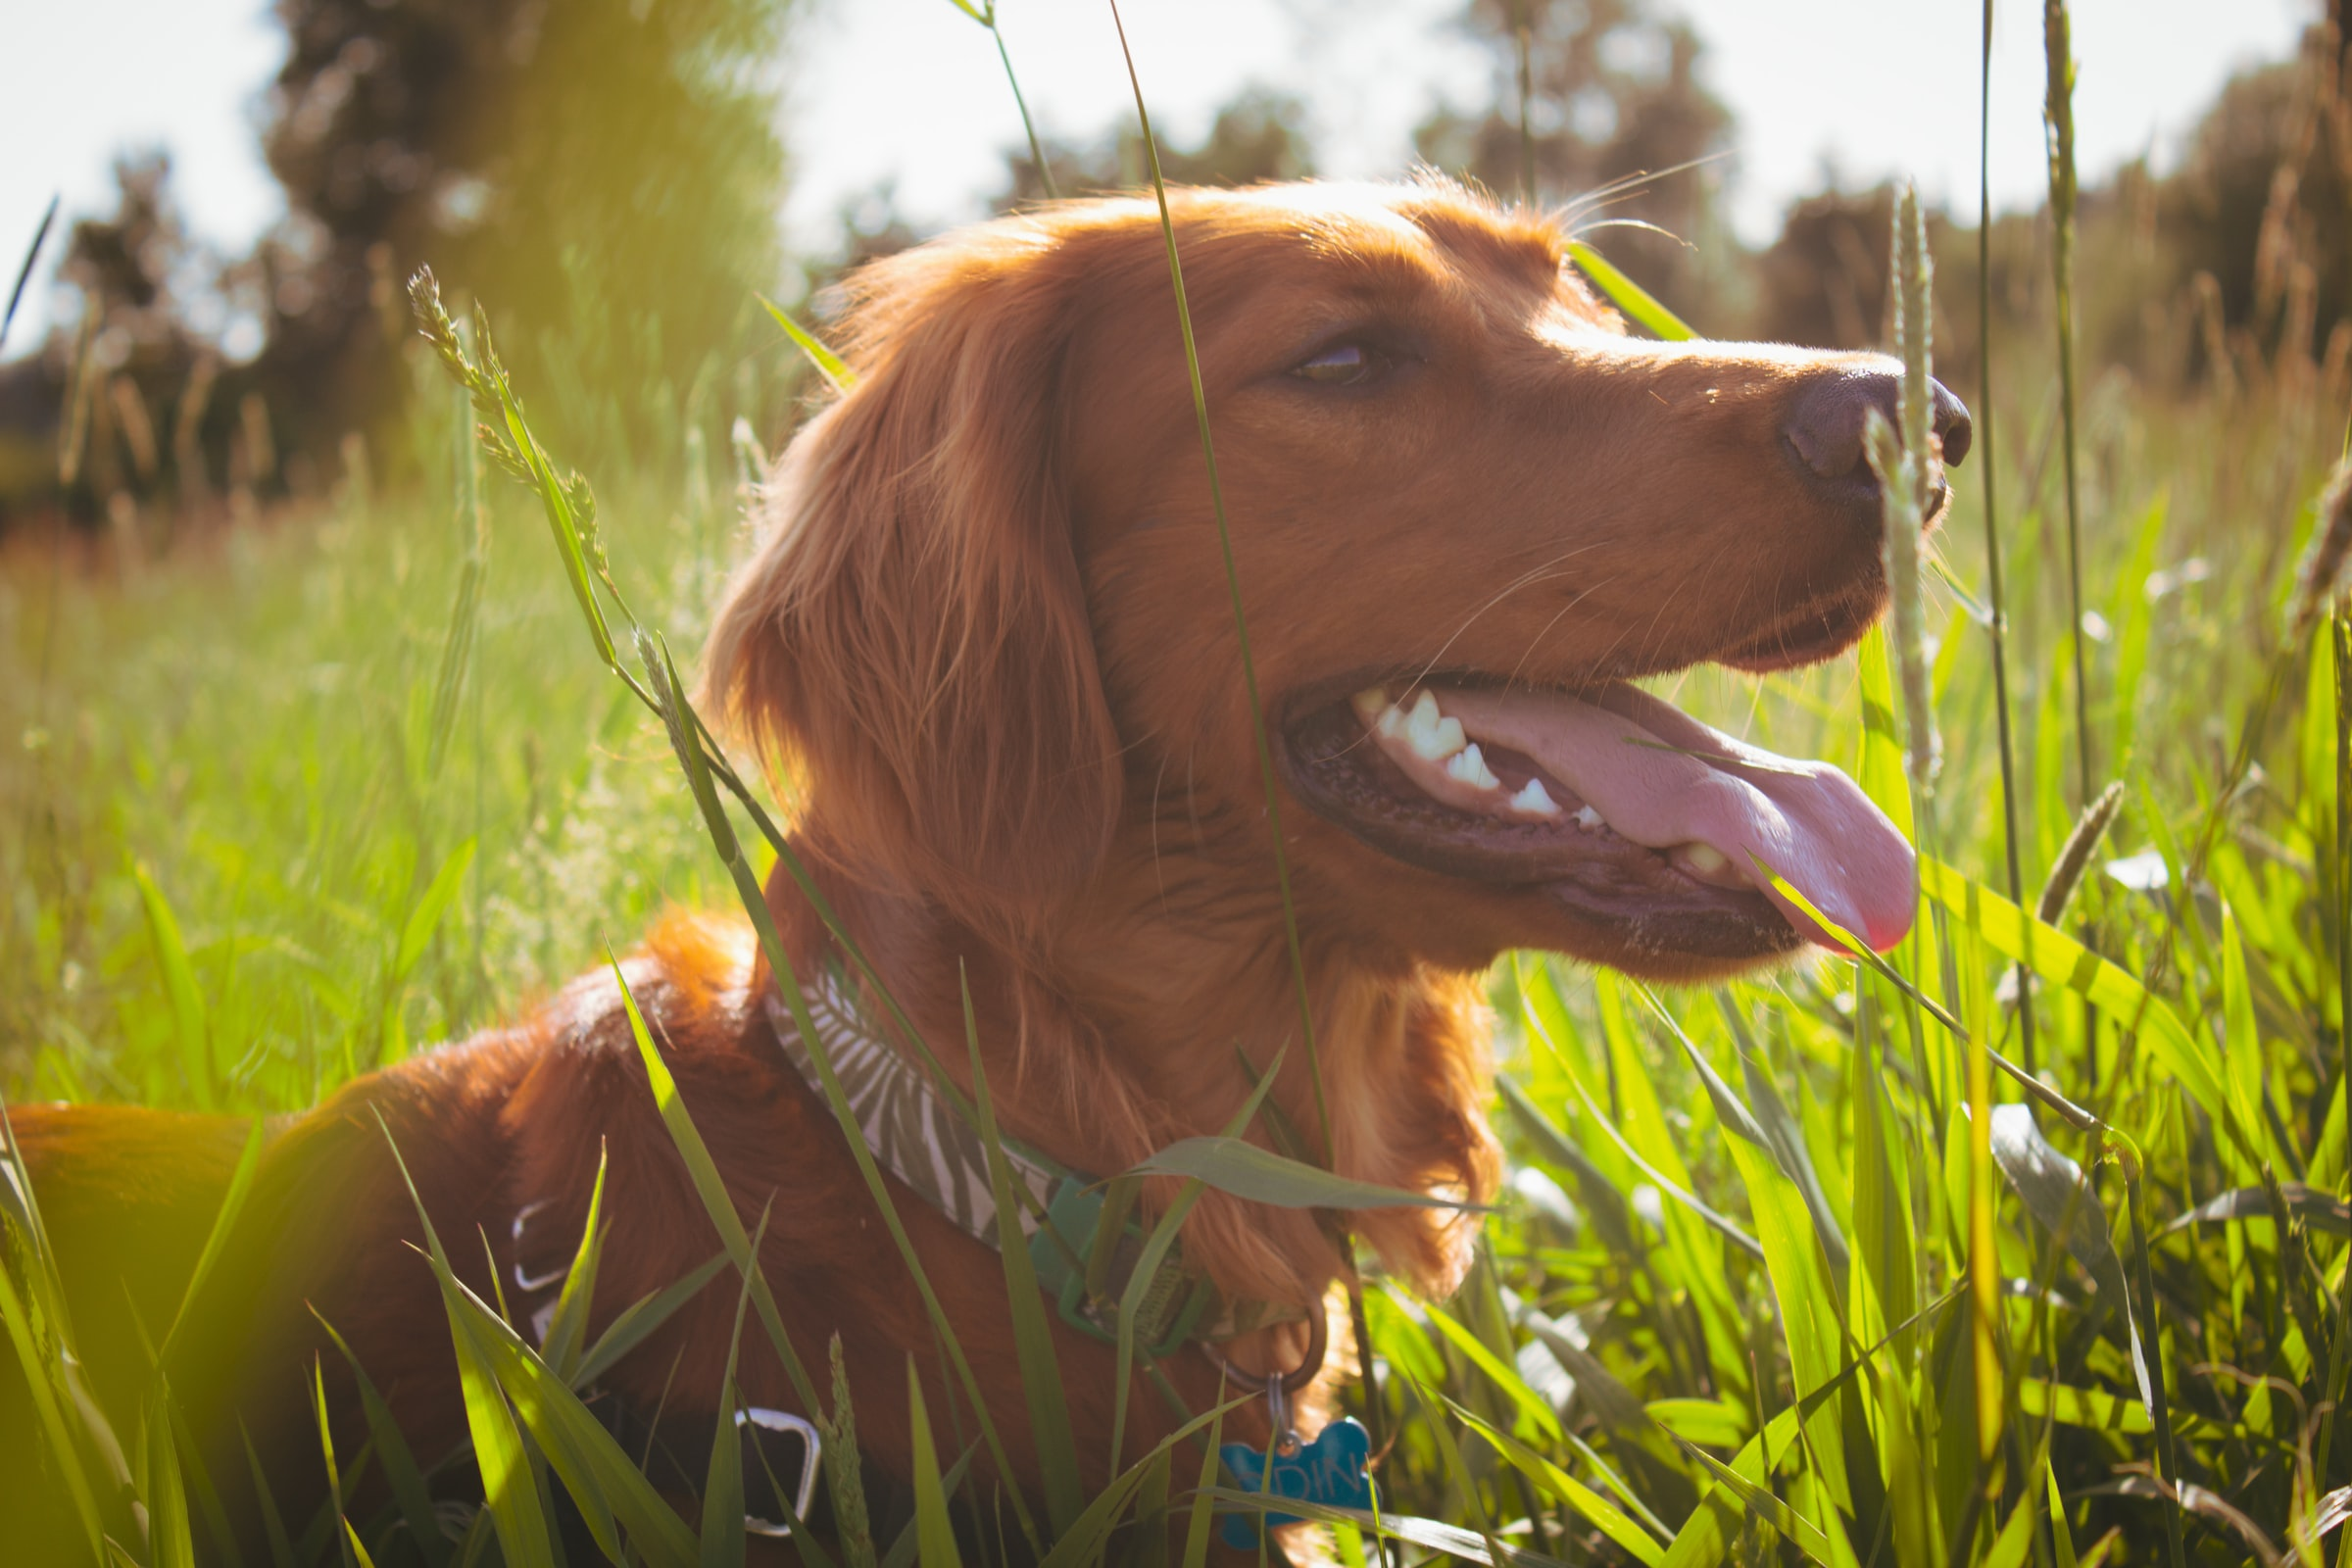 The Best Dog-Friendly Parks In Dublin